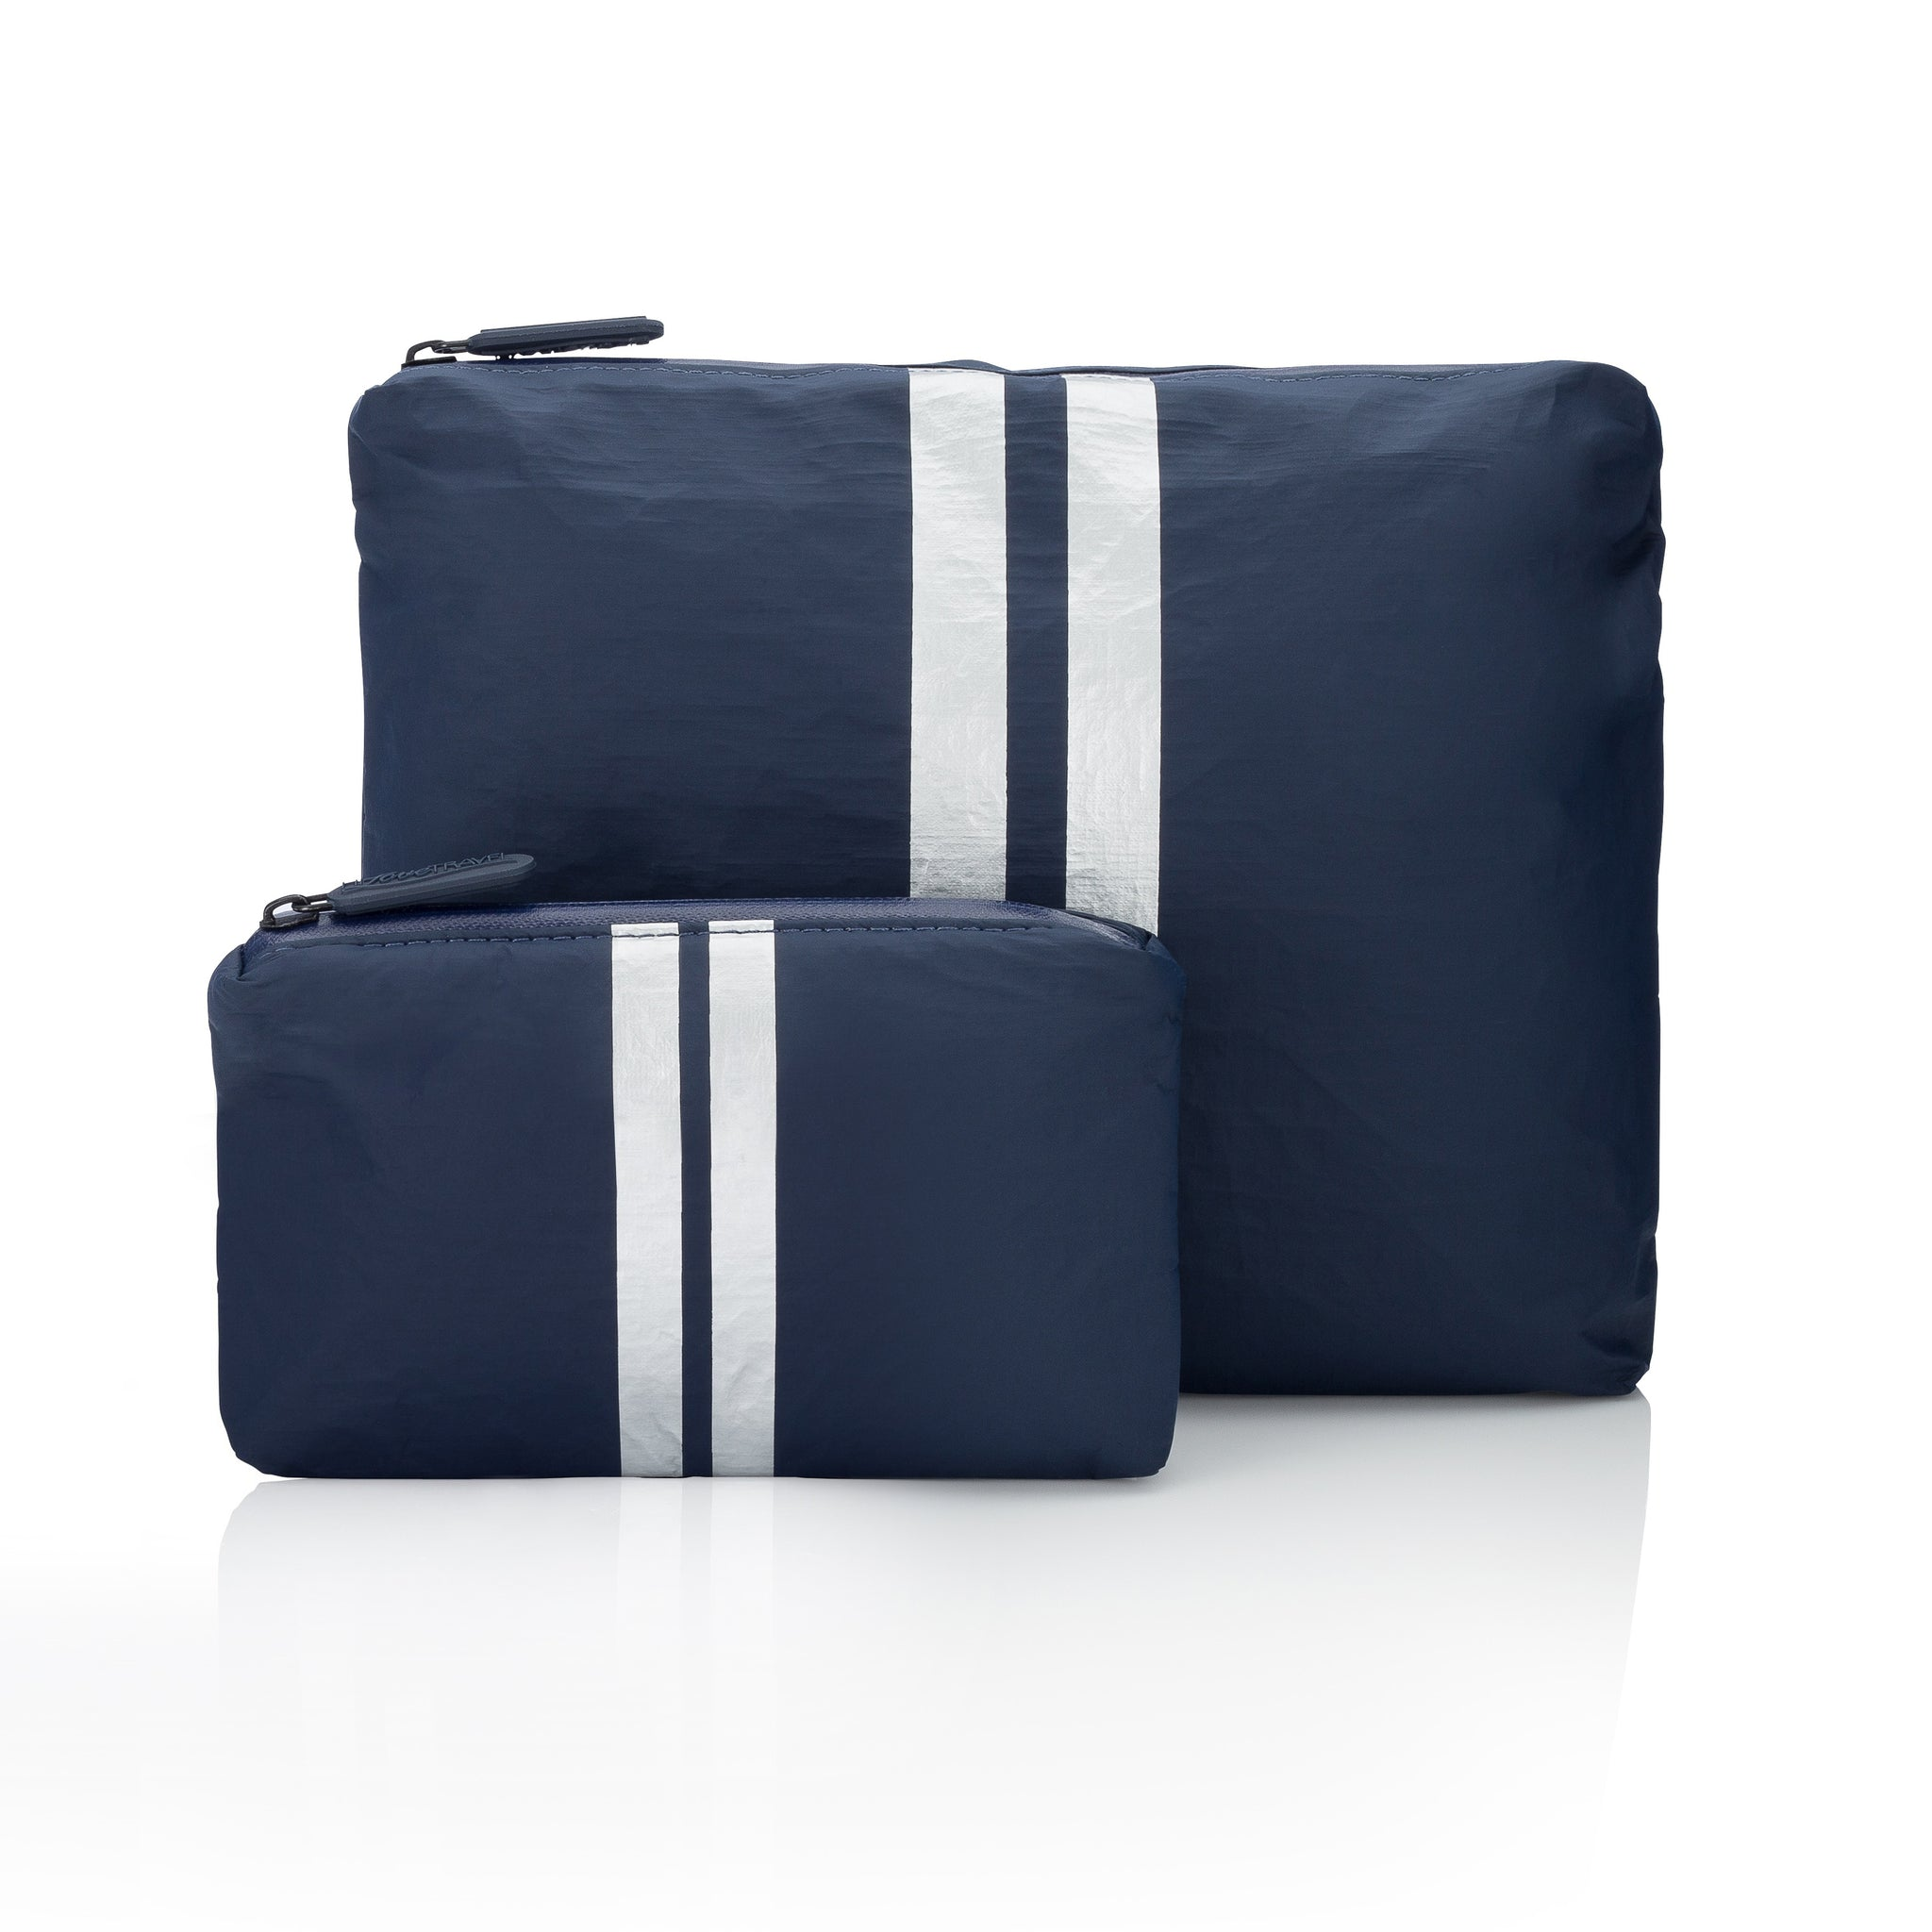 Set of Two Packs - Navy with Metallic Silver Lines